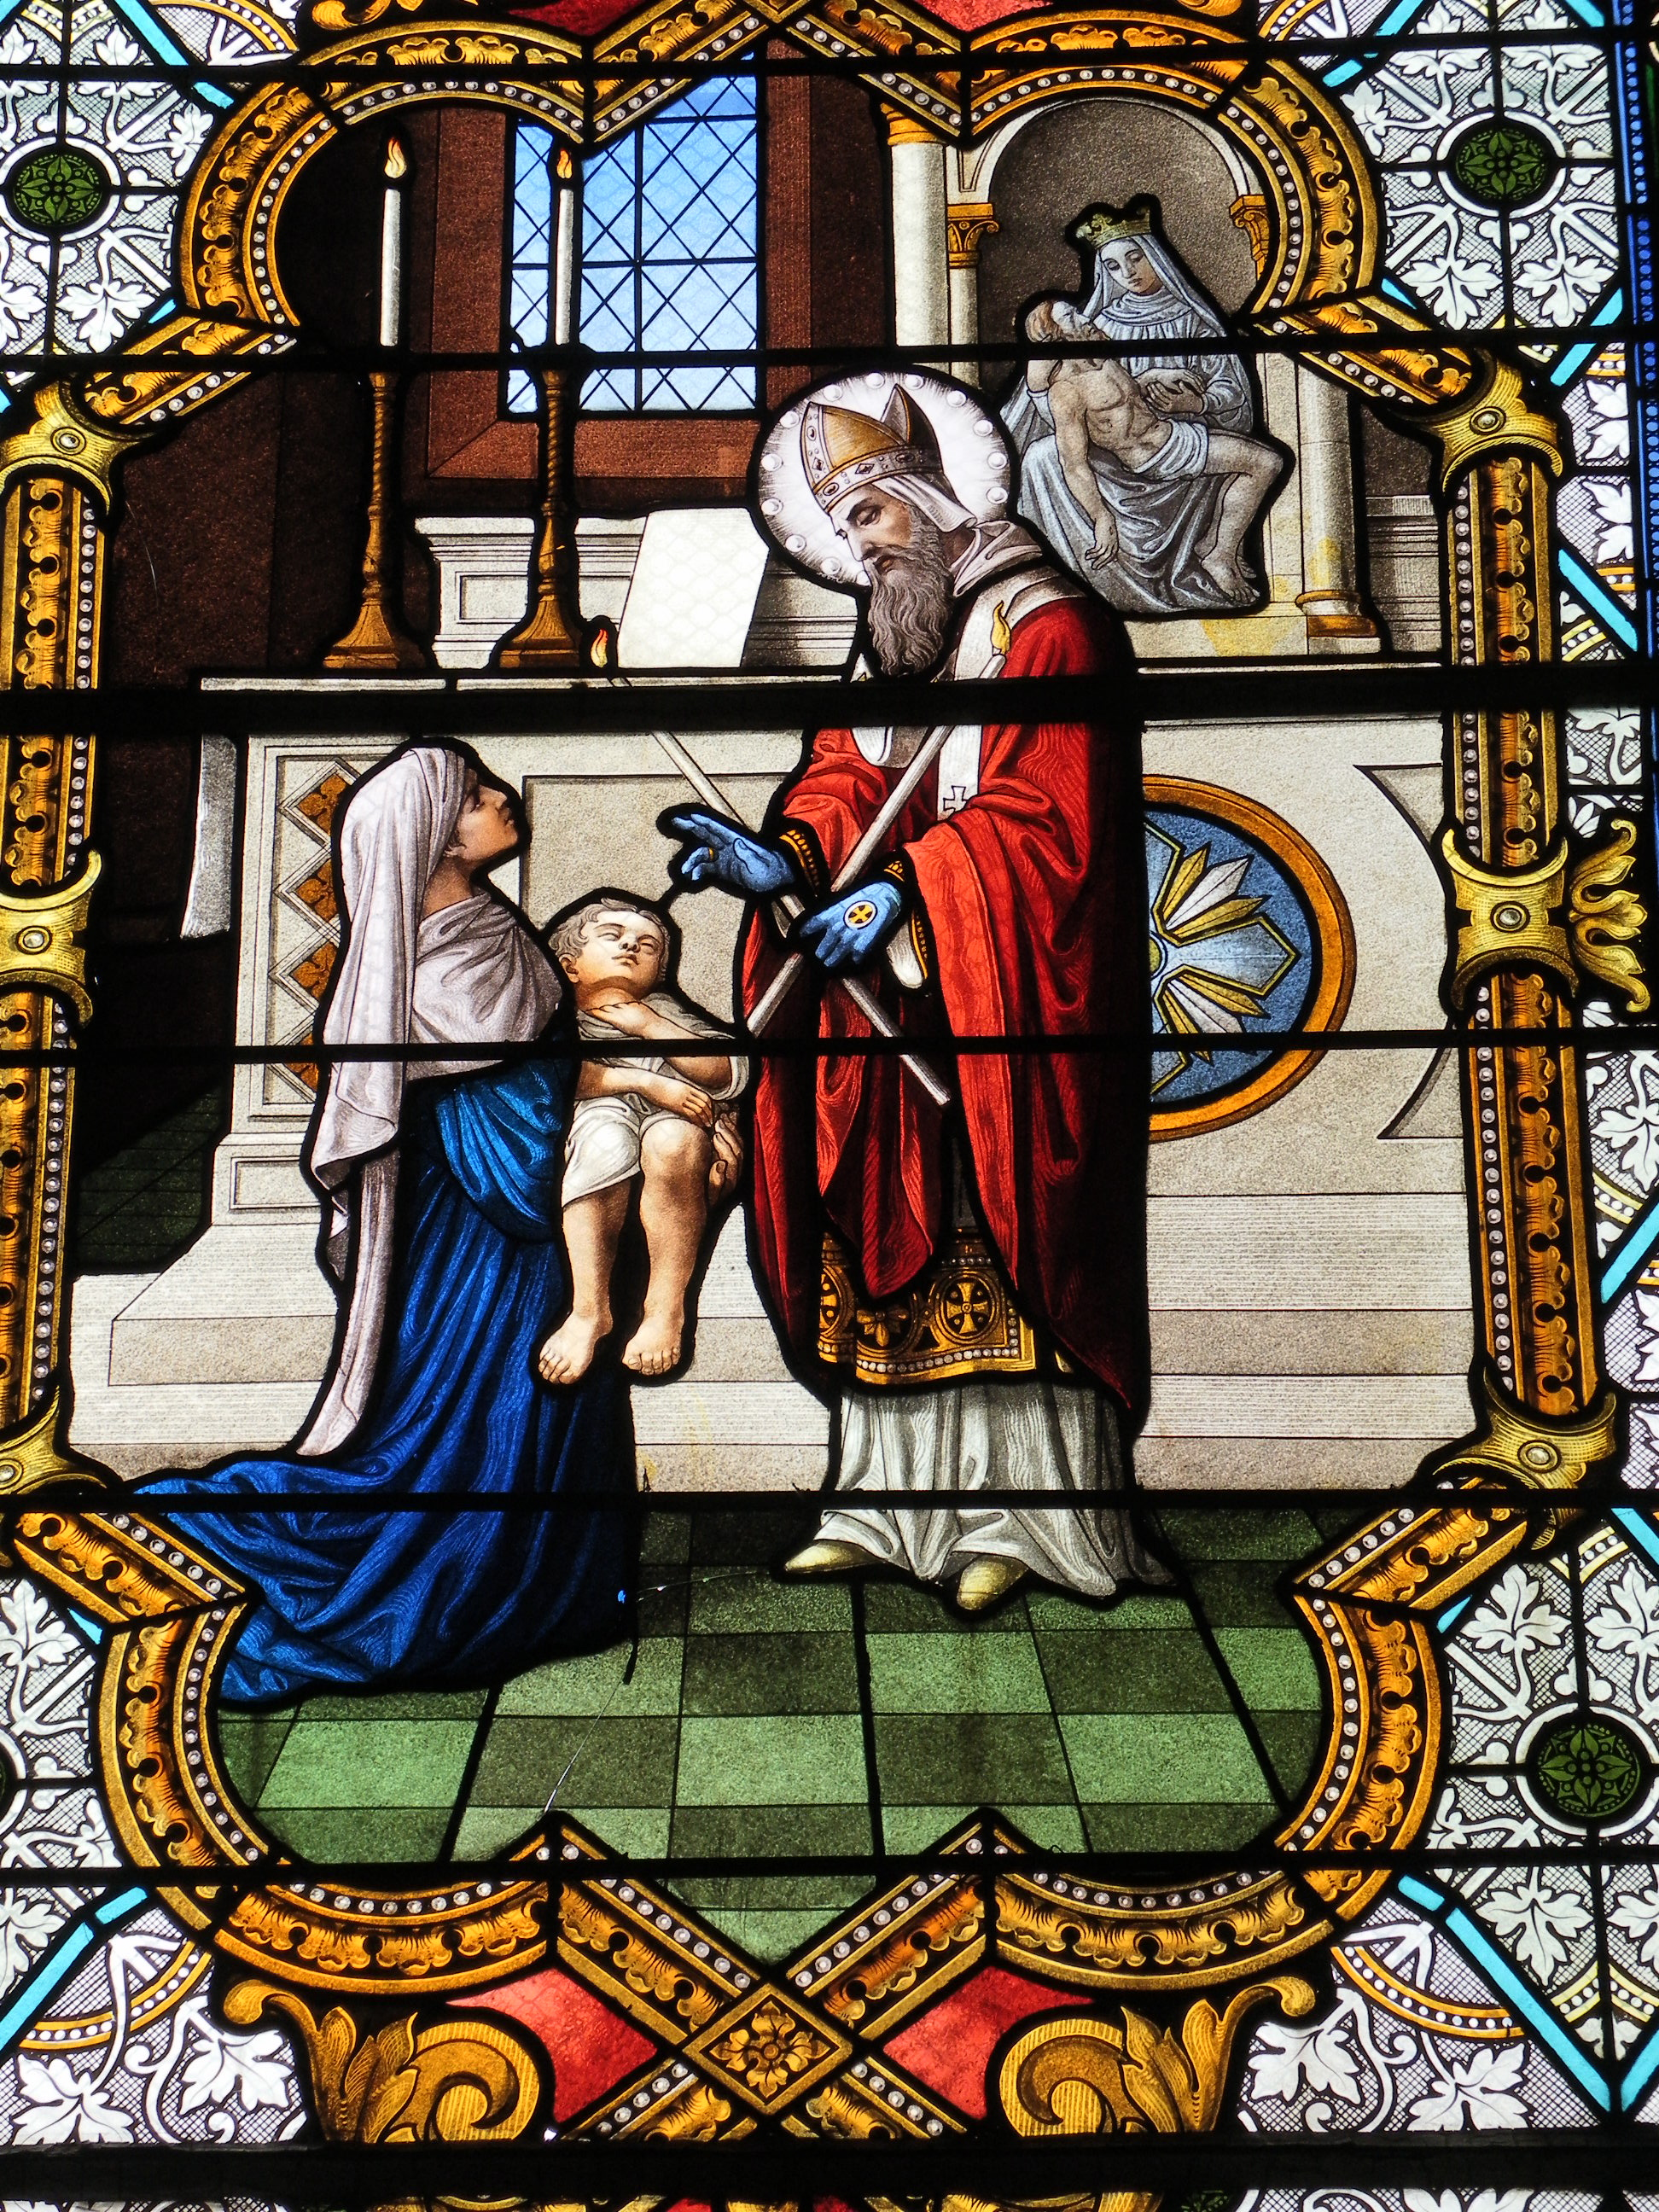 https://upload.wikimedia.org/wikipedia/commons/2/22/Fr_Chapelle_Notre-Dame-de-Lhor_Saint_Blaise_stained_glass_-_center_detail.jpg